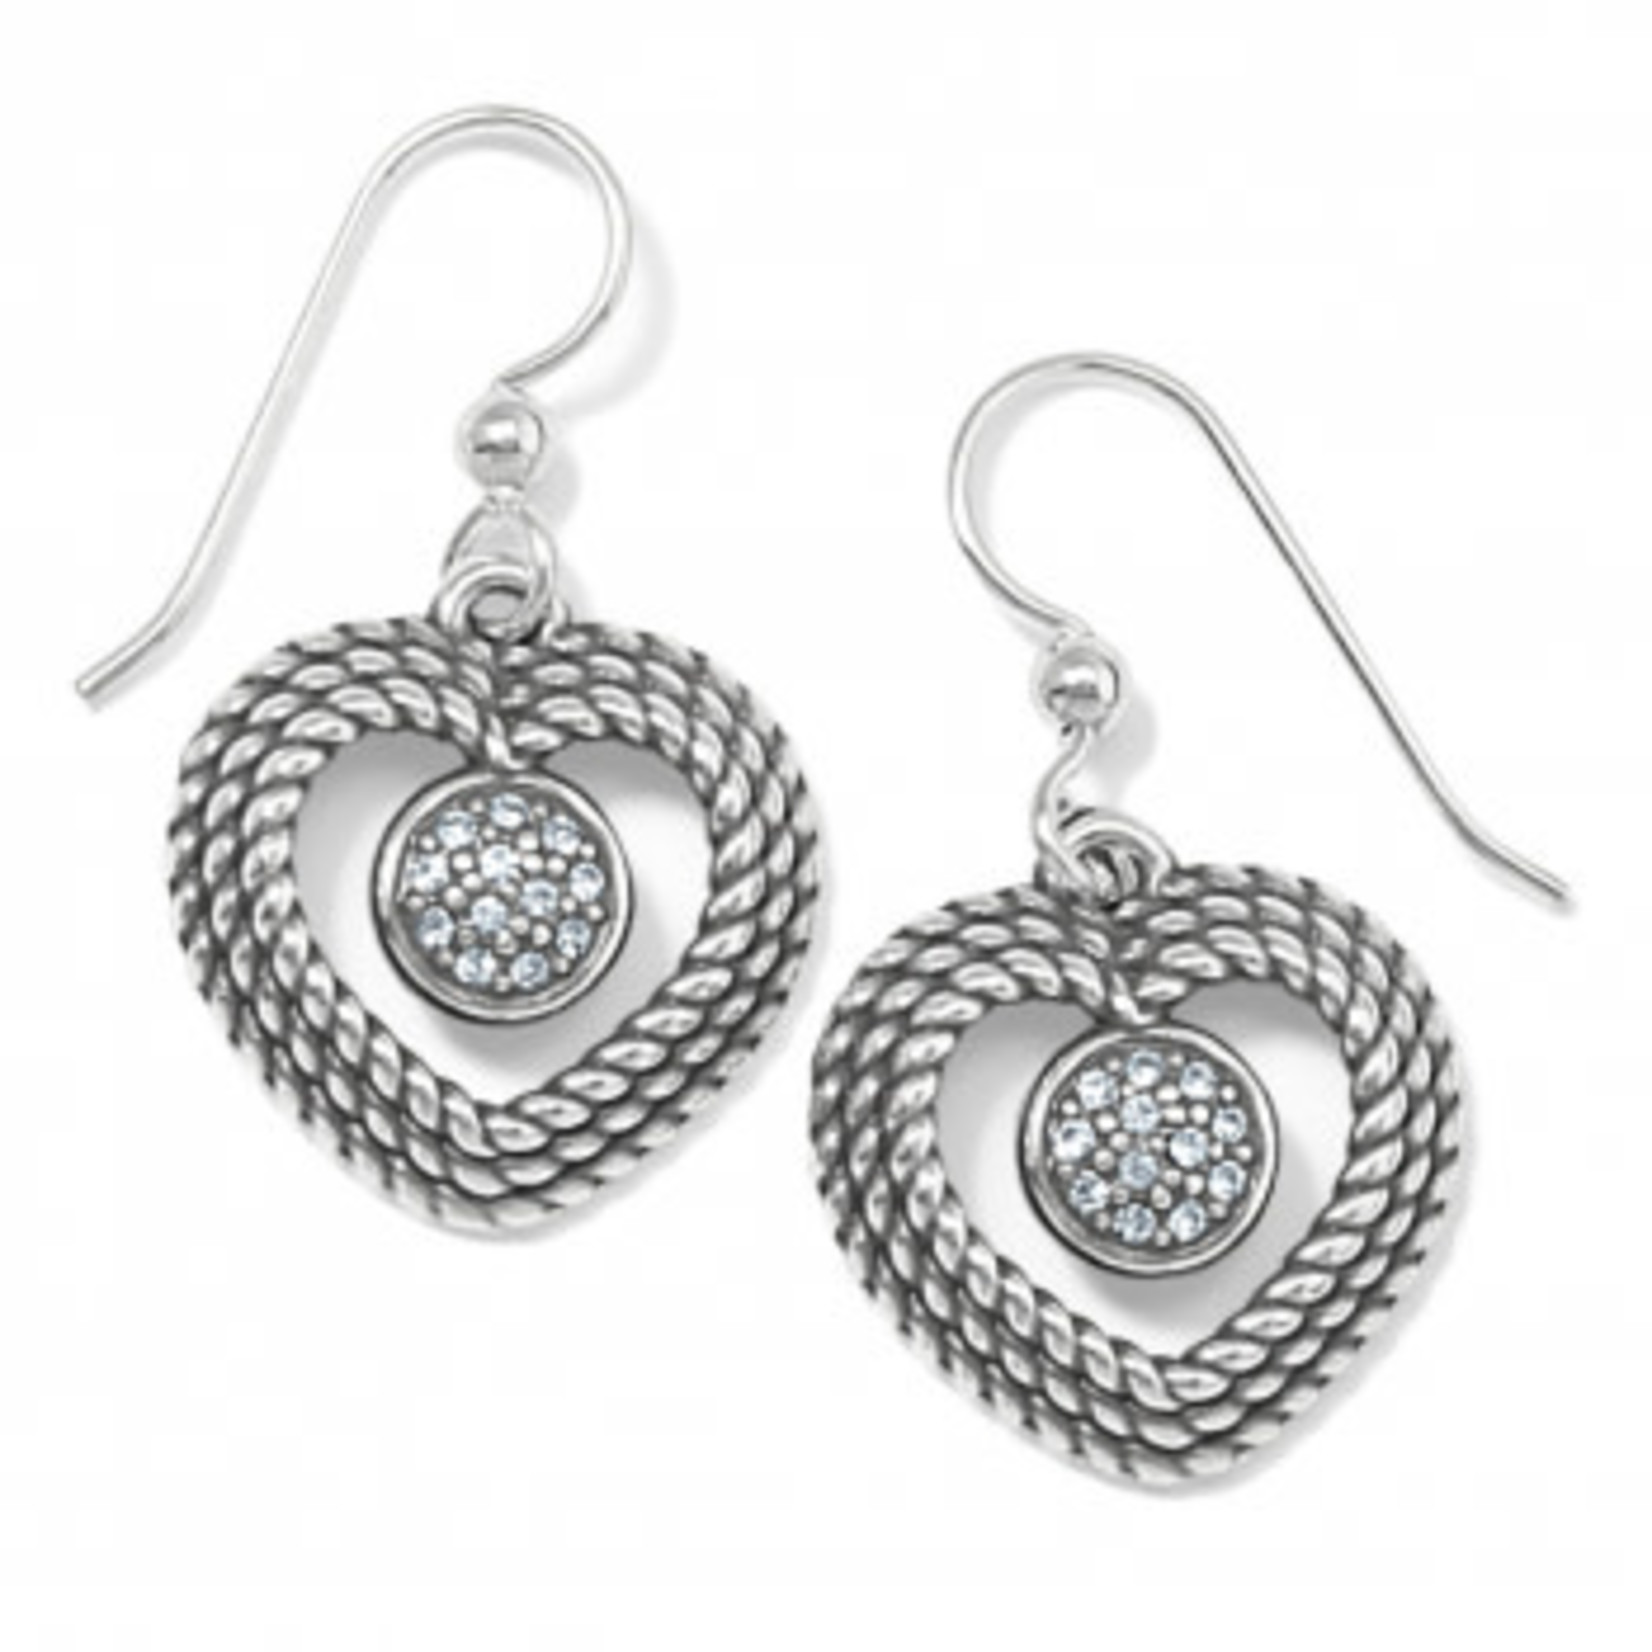 Brighton Portuguese Heart French Wire Earrings